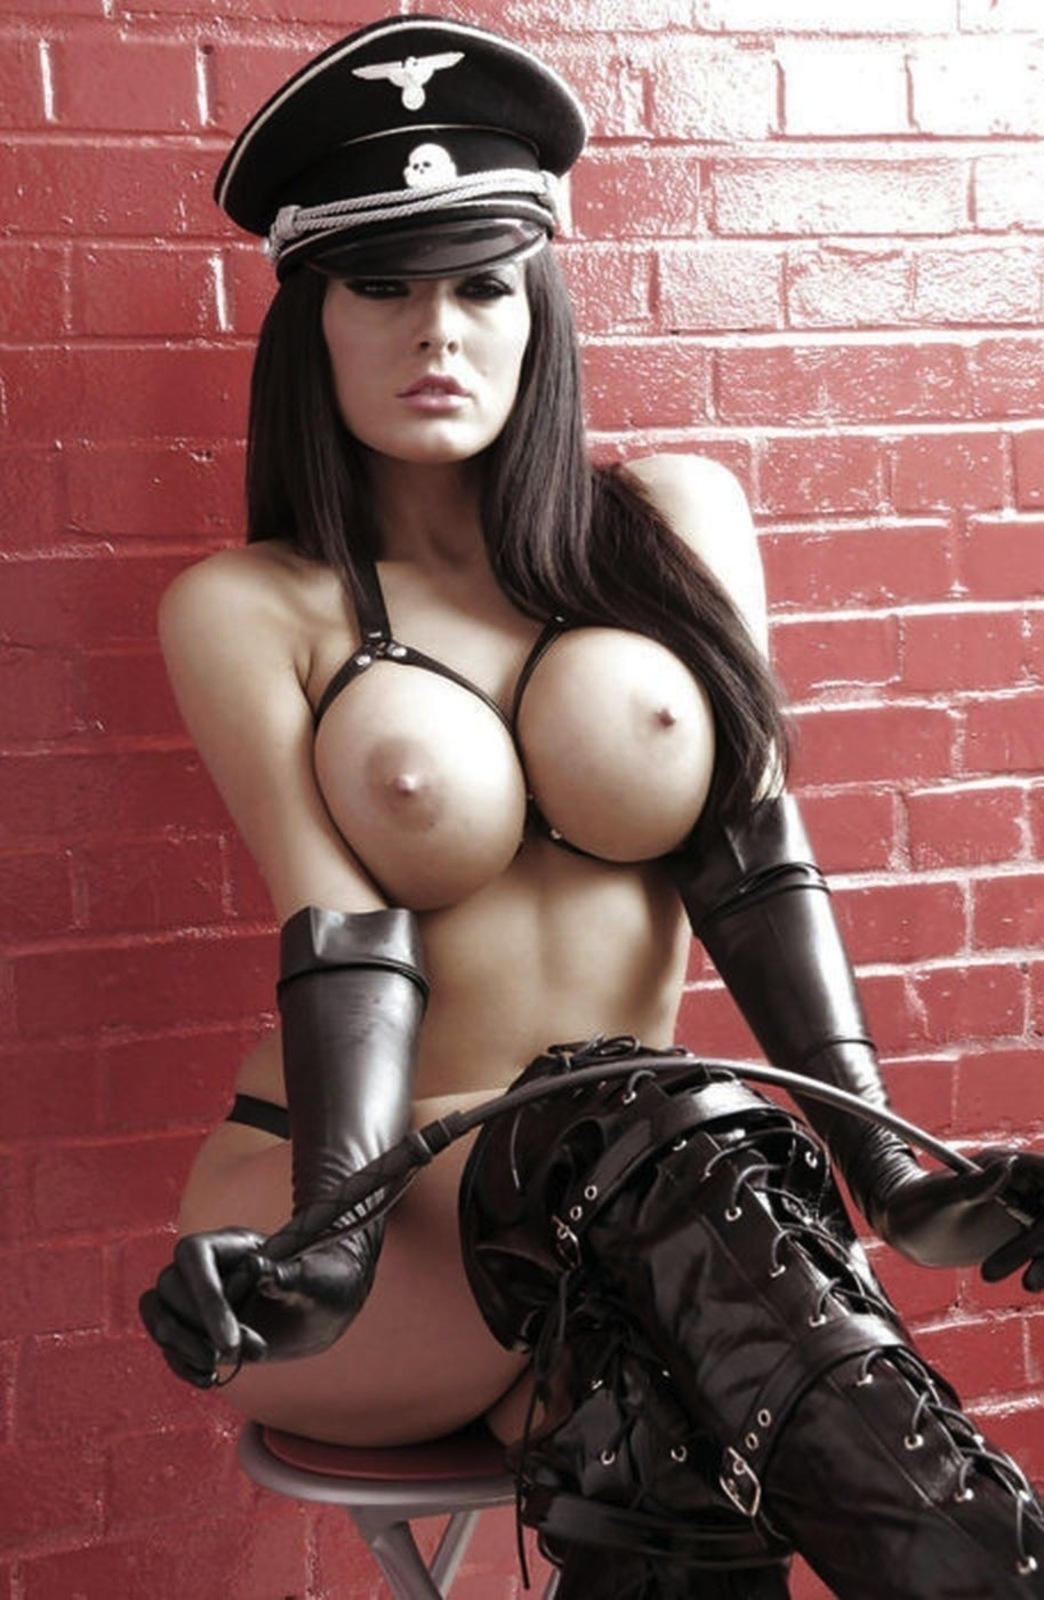 fucked all my sisters friends during sleepover #CharleyAtwell #boobs #boots #dominatrix #gloves #gorgeous #leather #nazi #onepiece #perfectbody #pretty #roundboobs #thighhighboots #whip